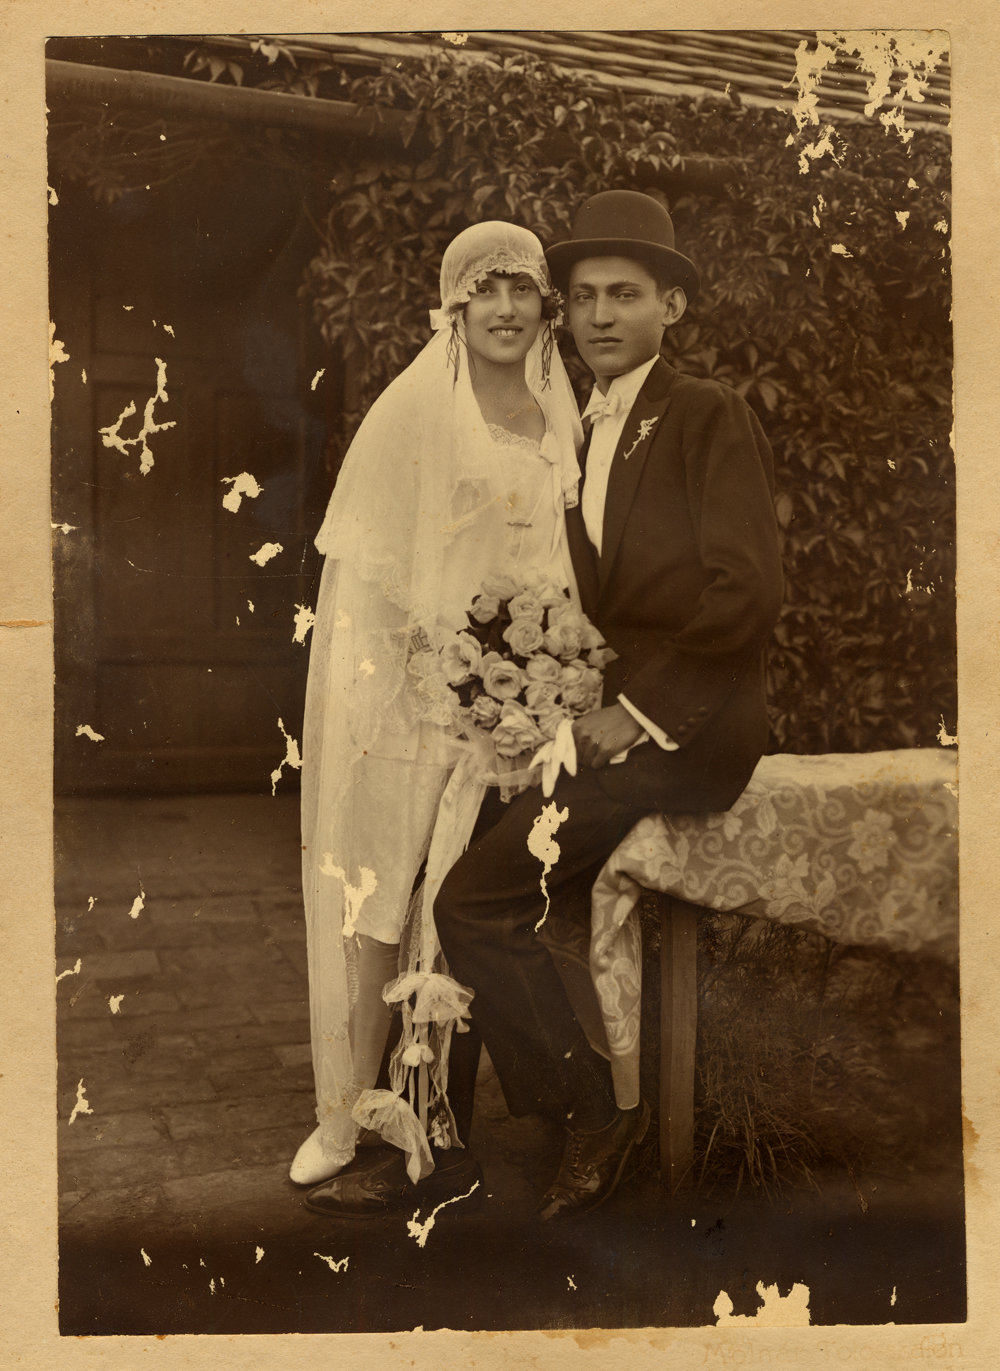 Bella and Adolph Shonfeld on their wedding day, Derecske, 1928.